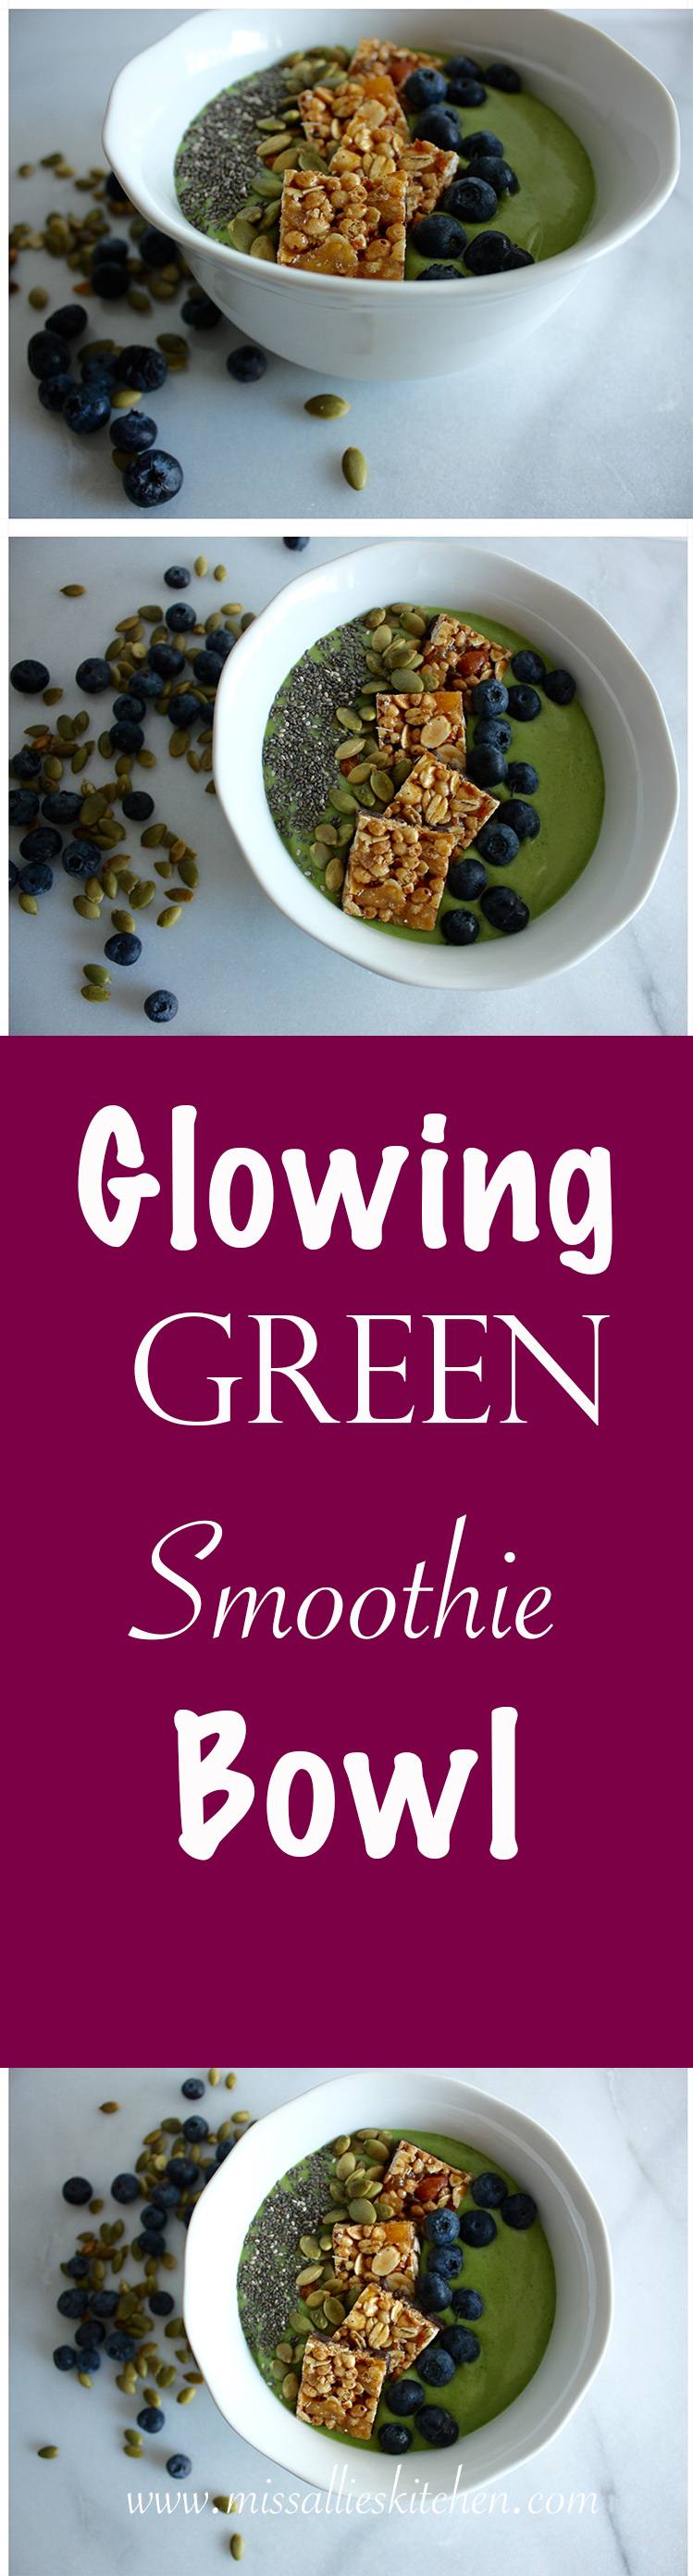 Glowing Green Smoothie Bowl-Miss Allies Kitchen